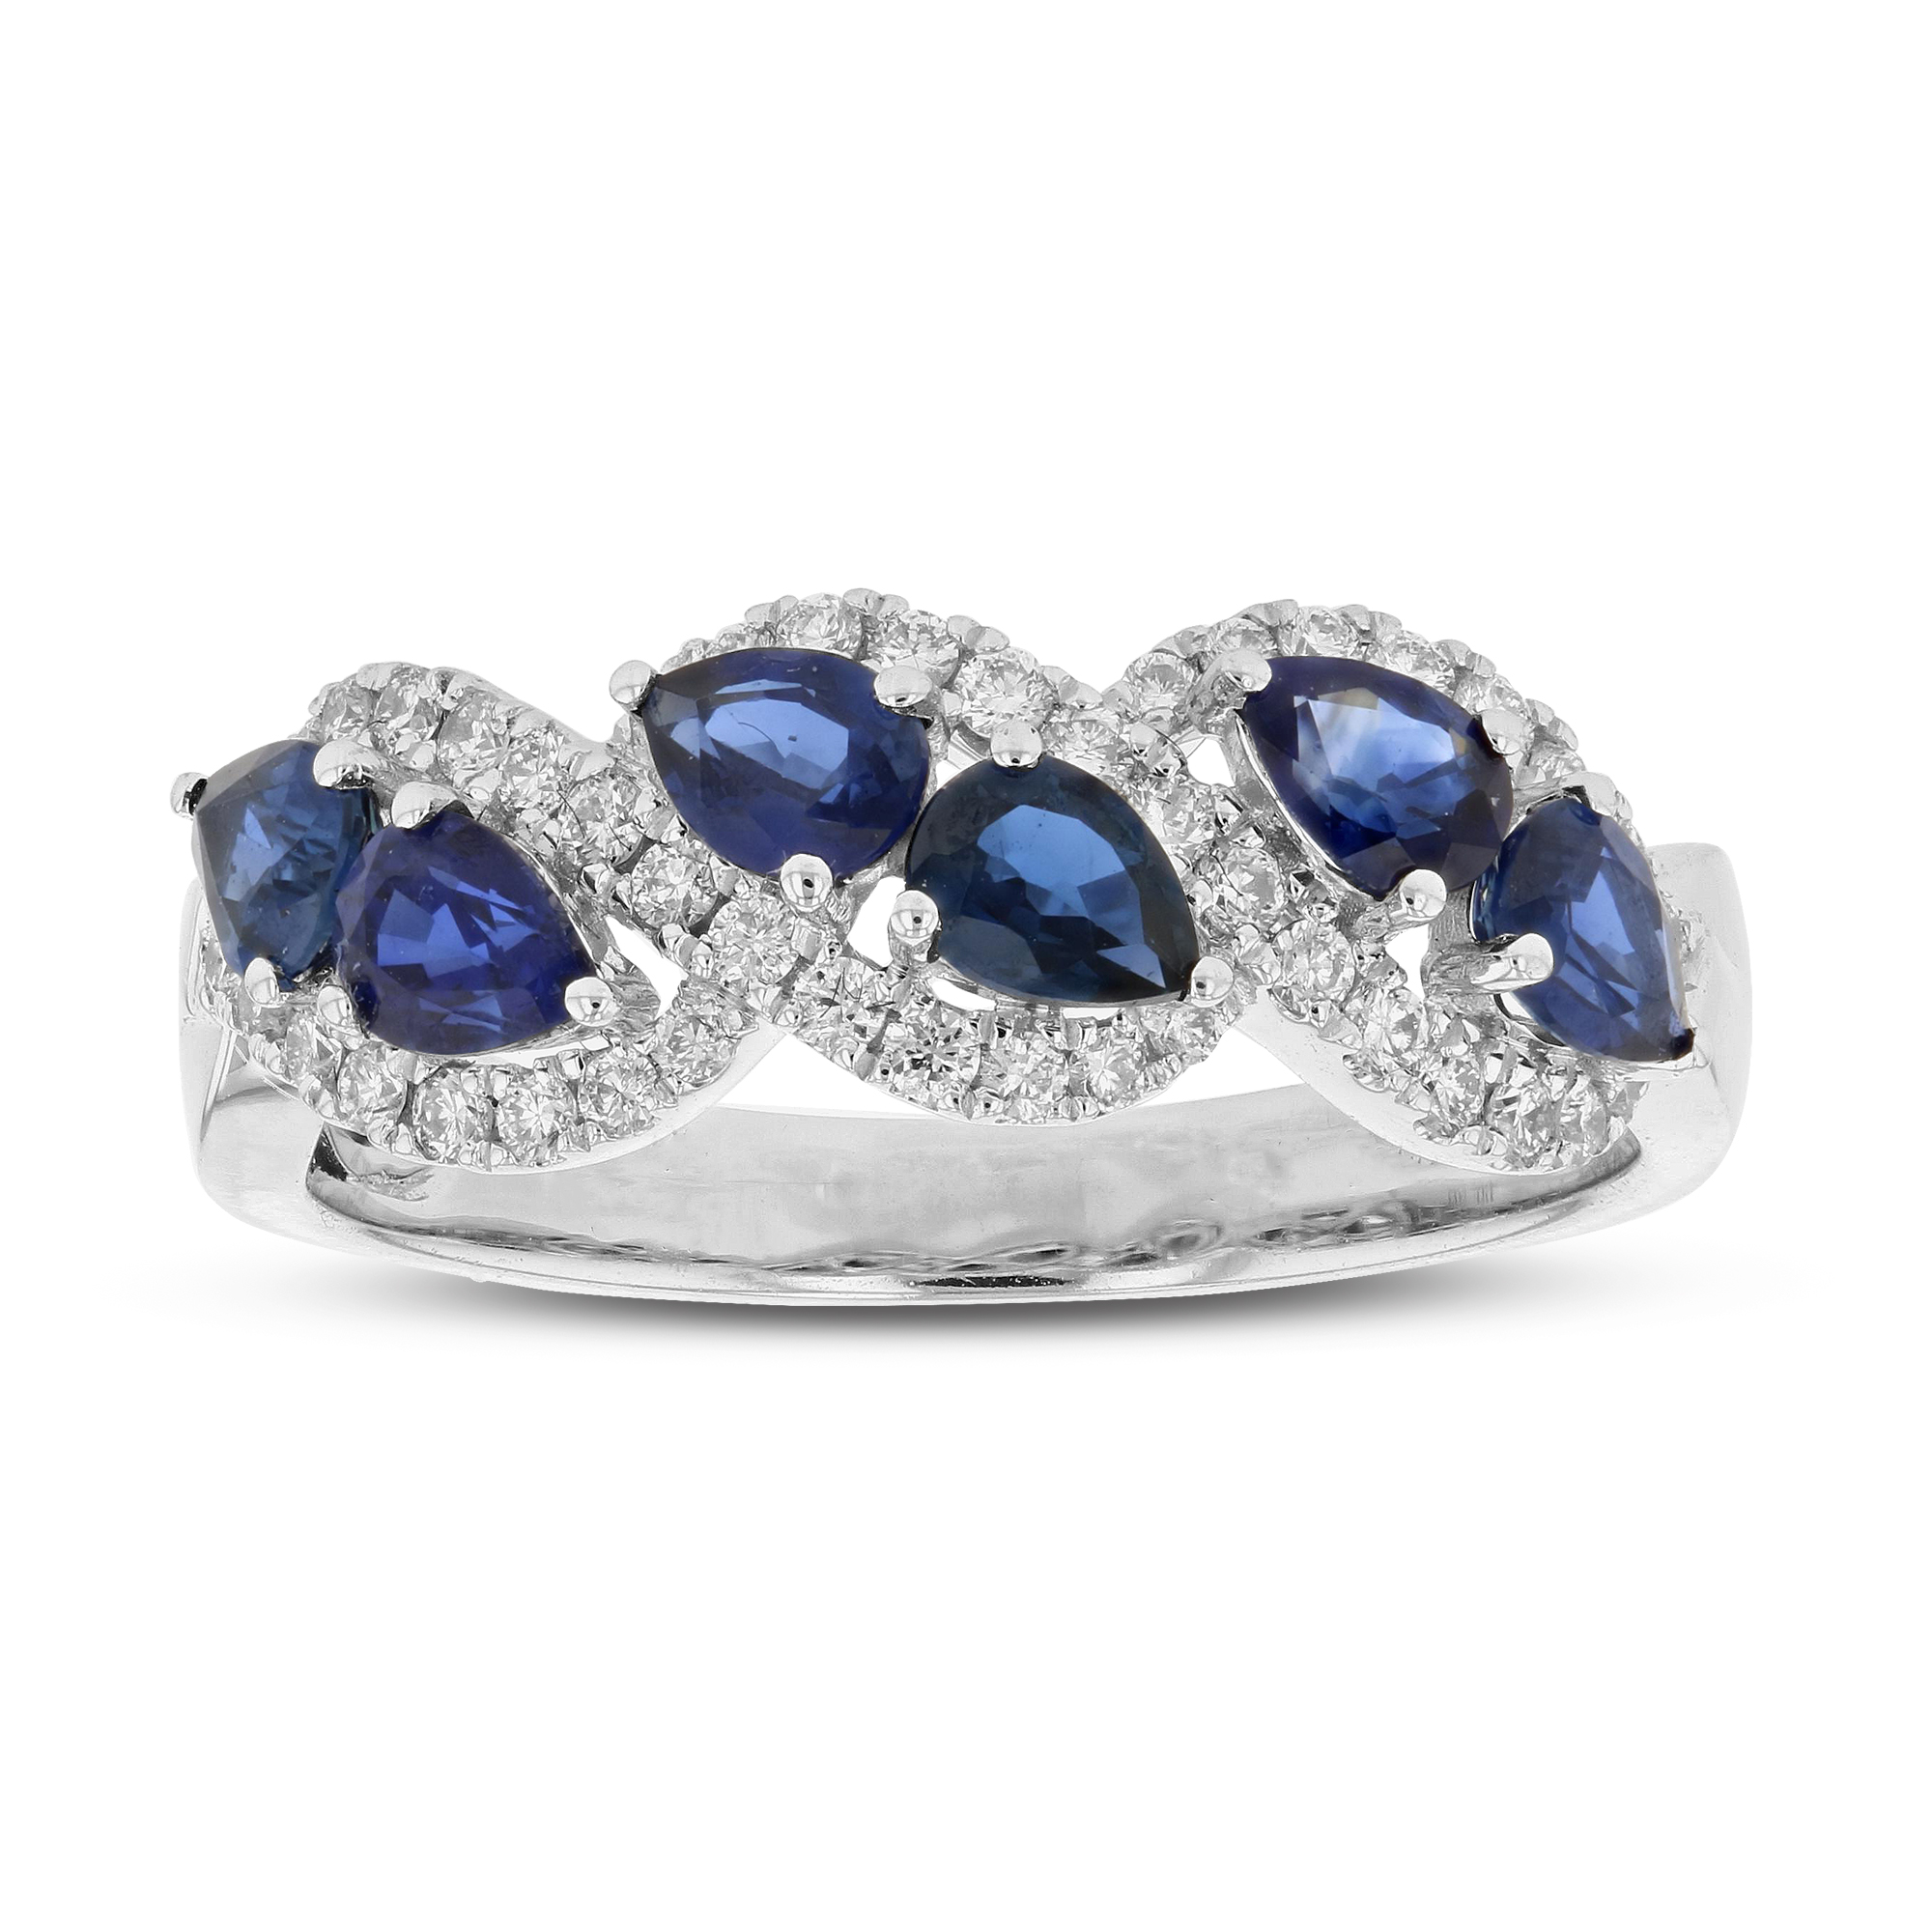 View 1.54ctw Diamond and Sapphire Band in 18k White Gold